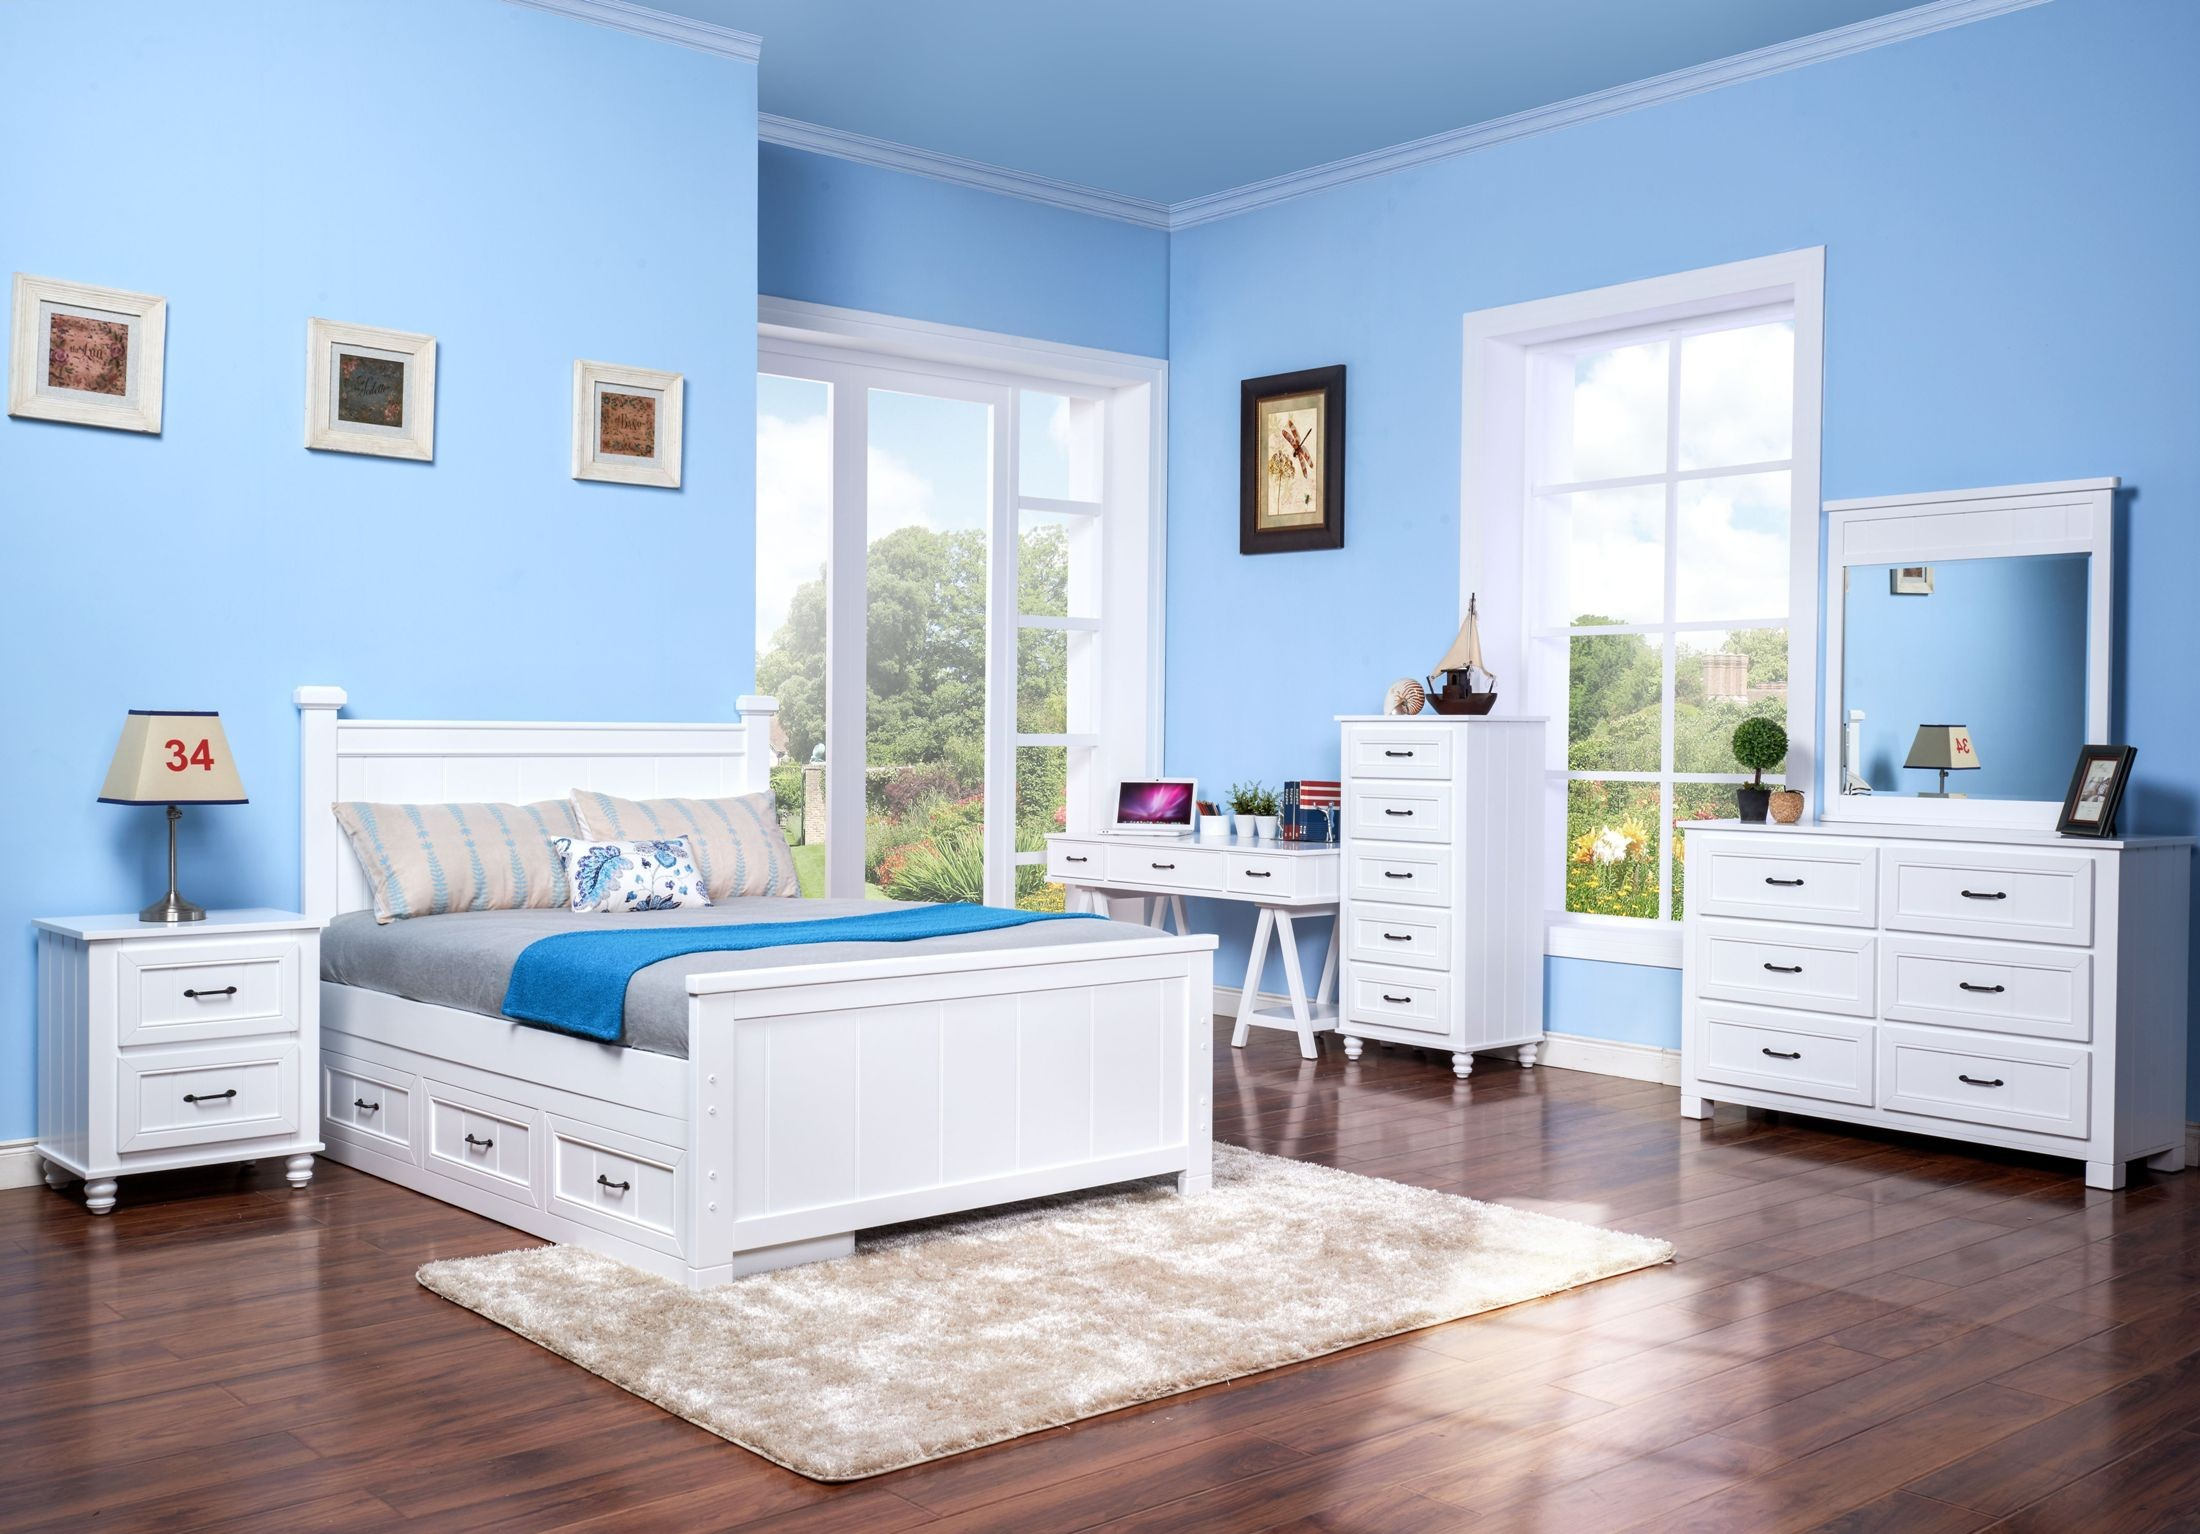 Taylor white youth storage panel bedroom set from new classic coleman furniture for Youth storage bedroom furniture